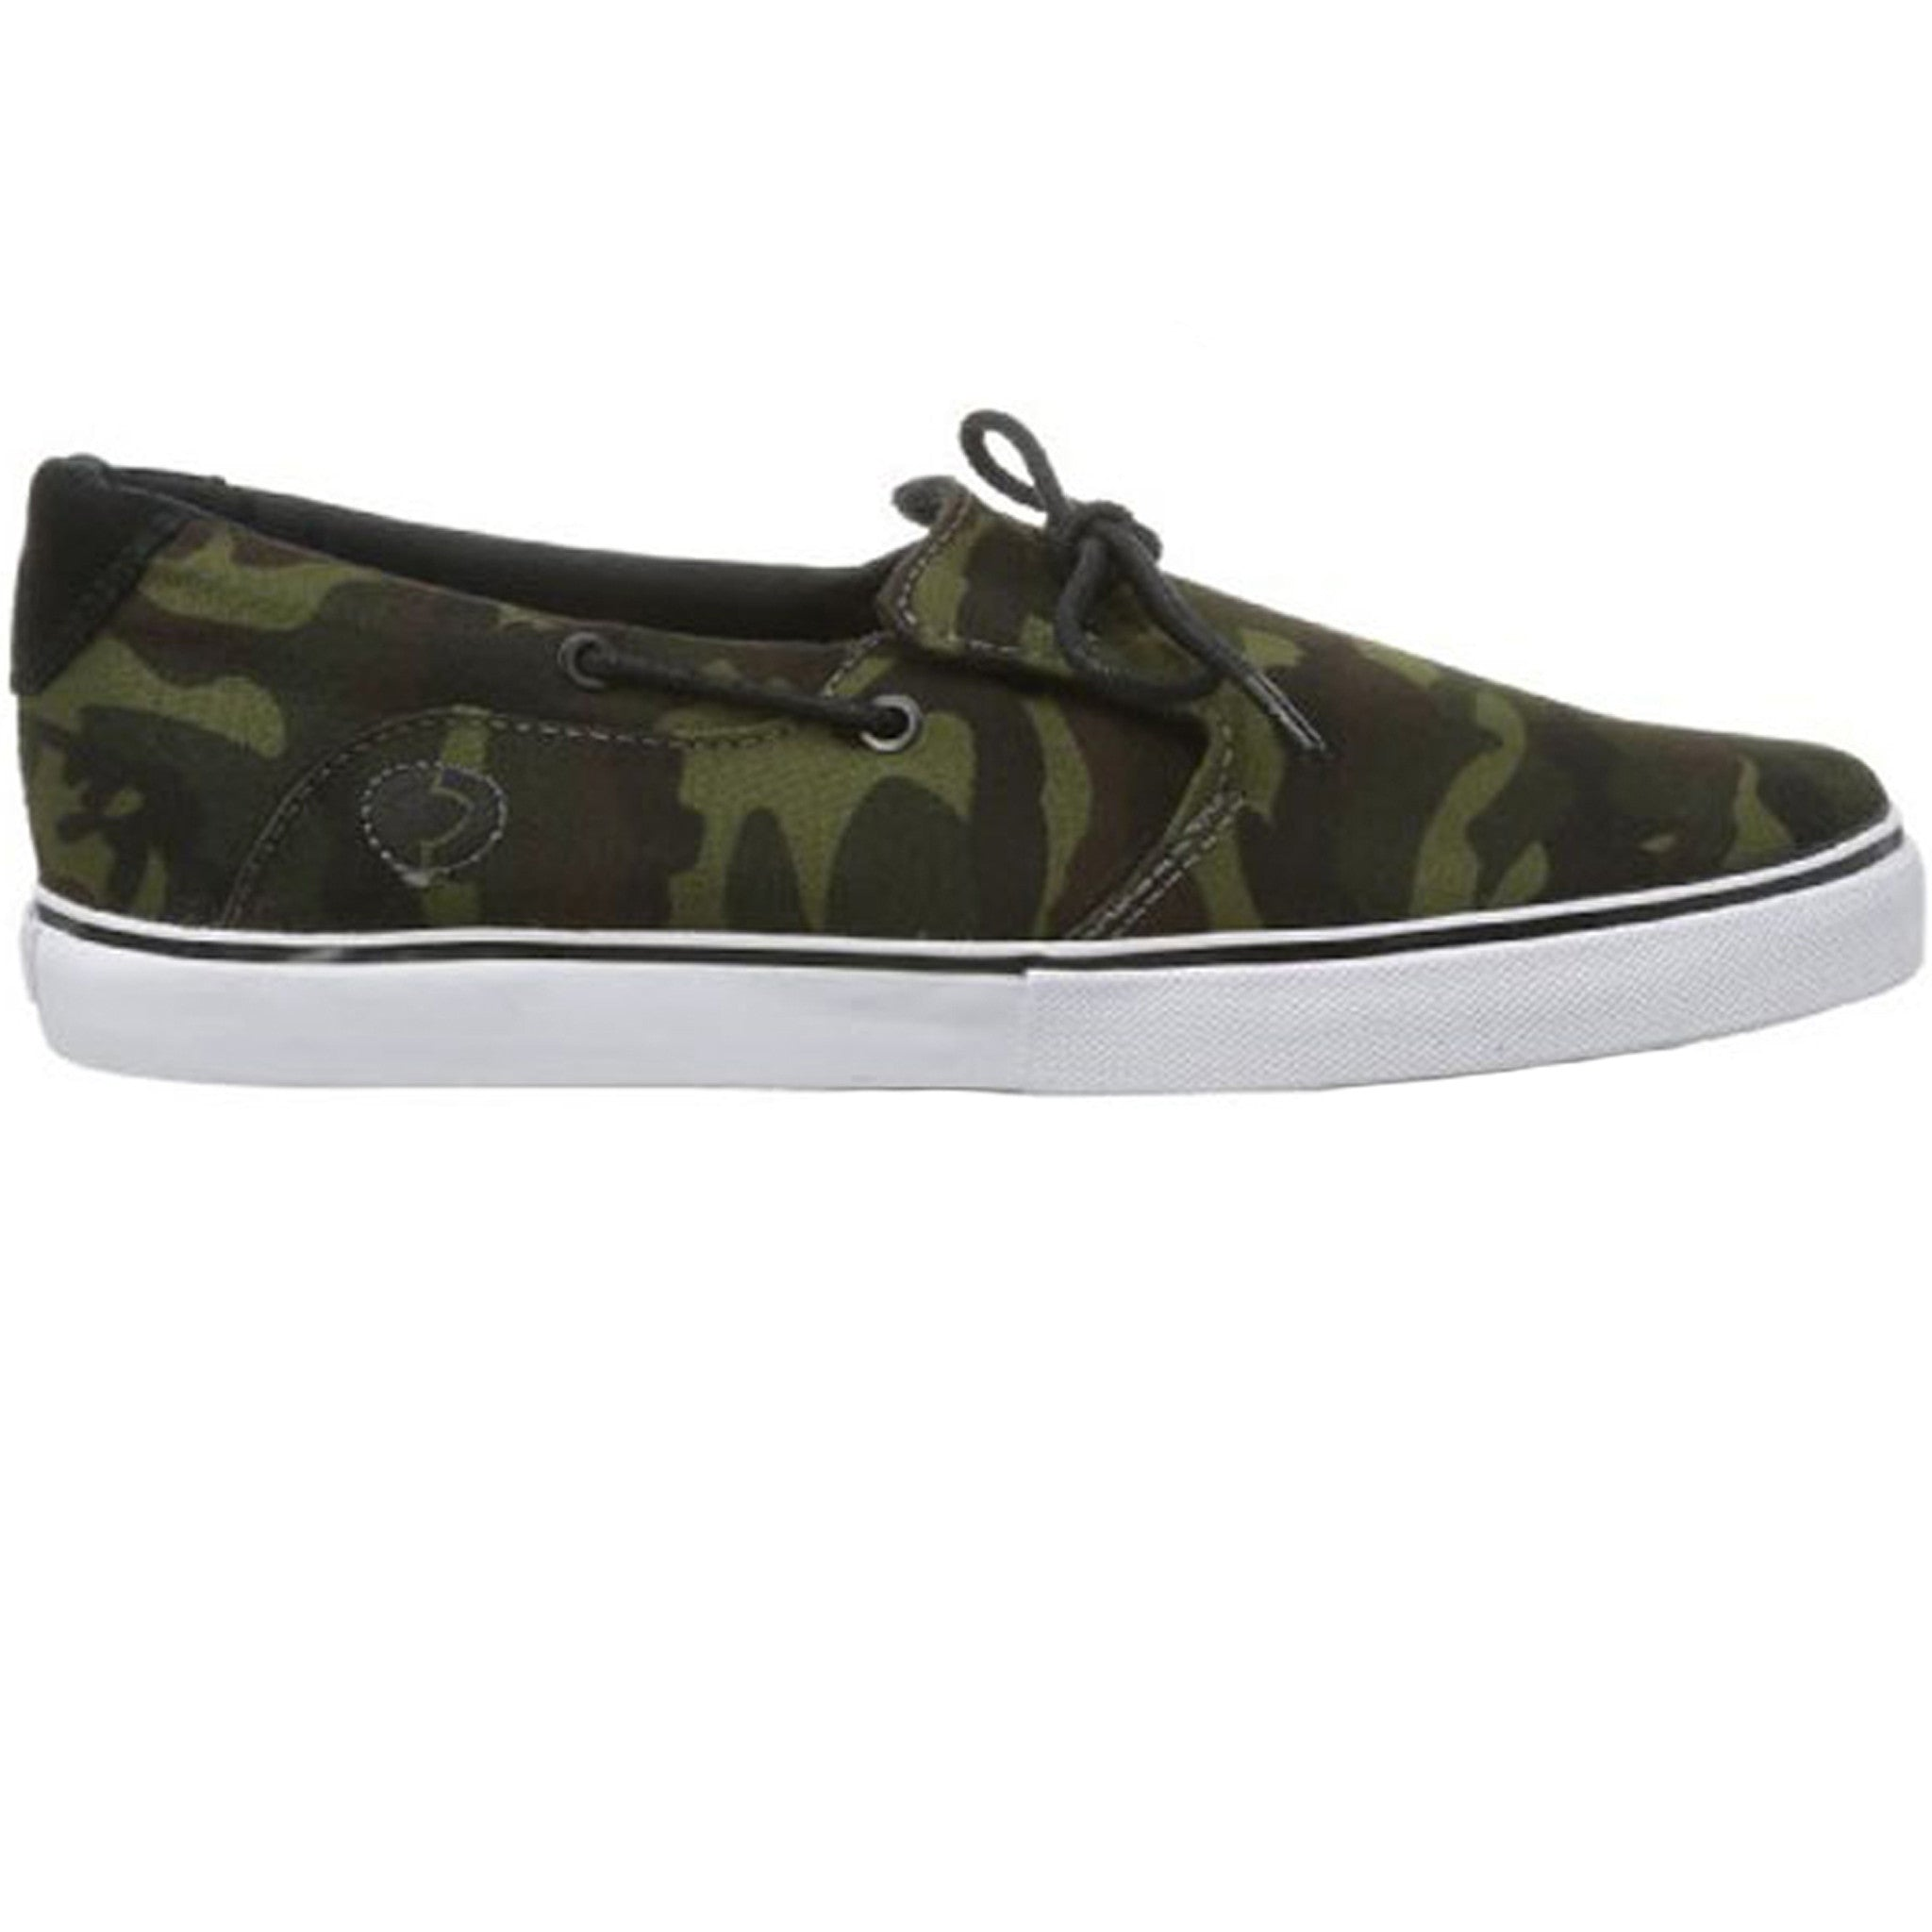 Ace - Black/Woodland Camo - Stoked Boardshop